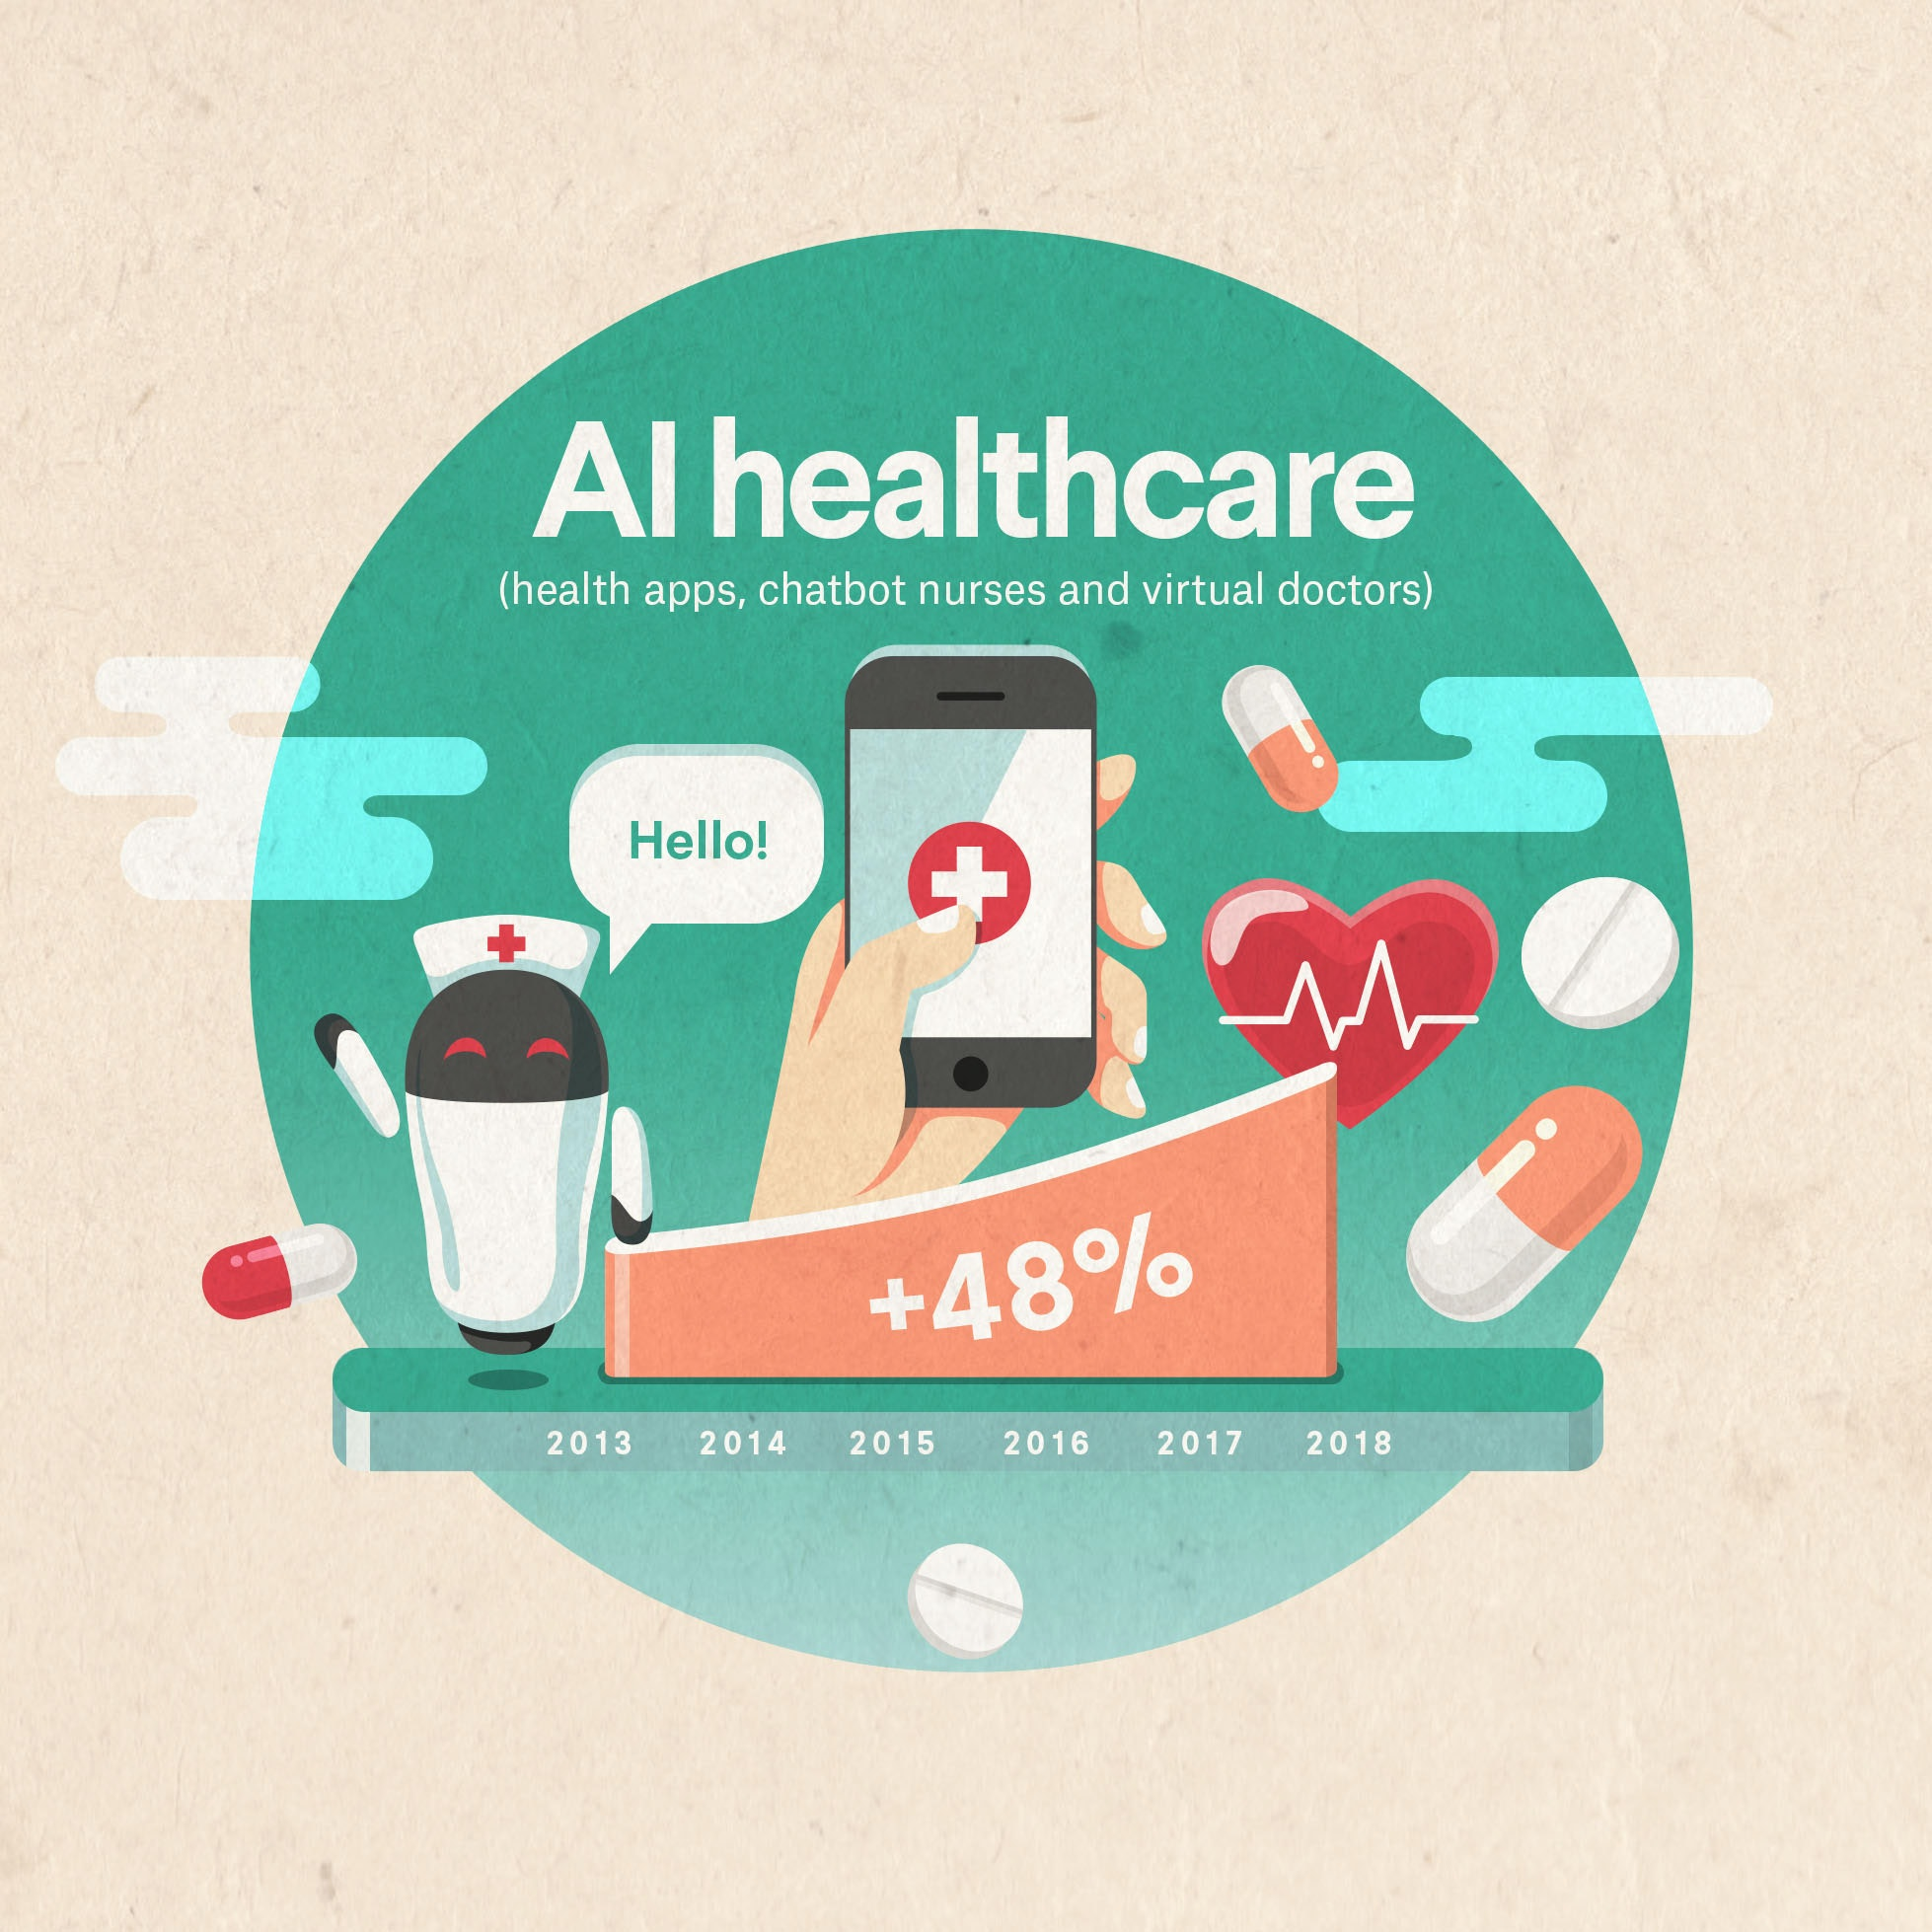 ai healthcare growth from 2013 to 2018 illustrated